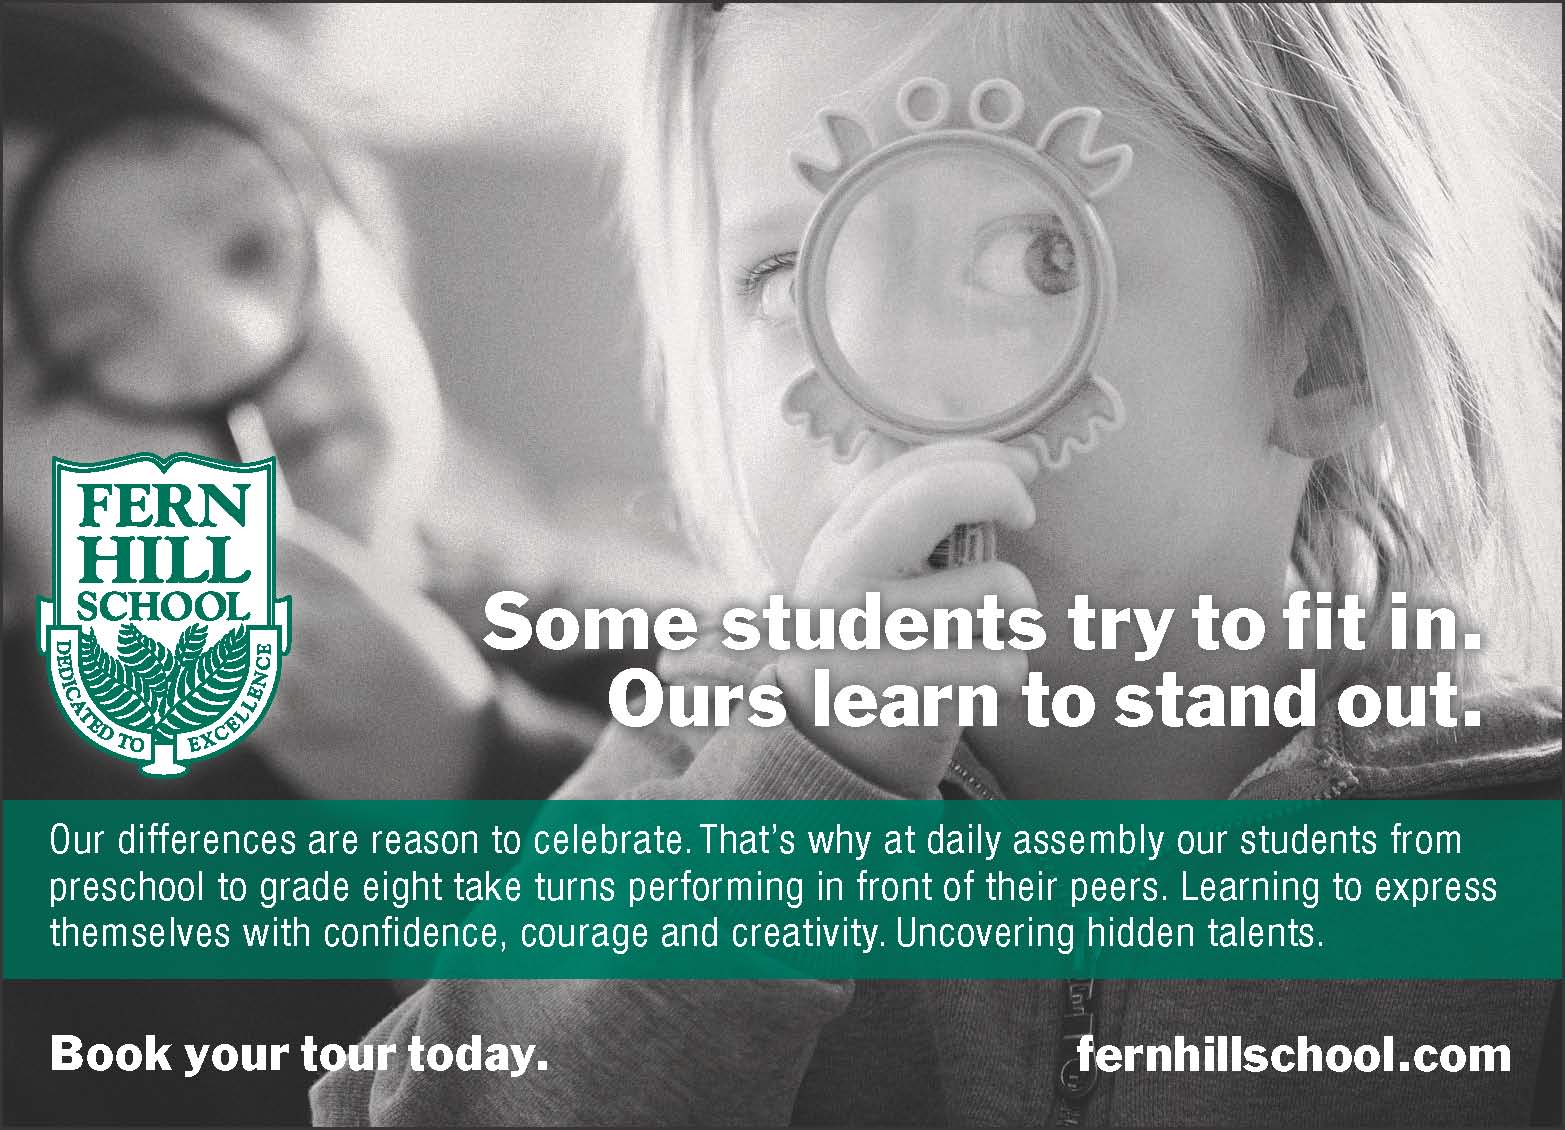 Fern Hill _Some students_ ad.jpg